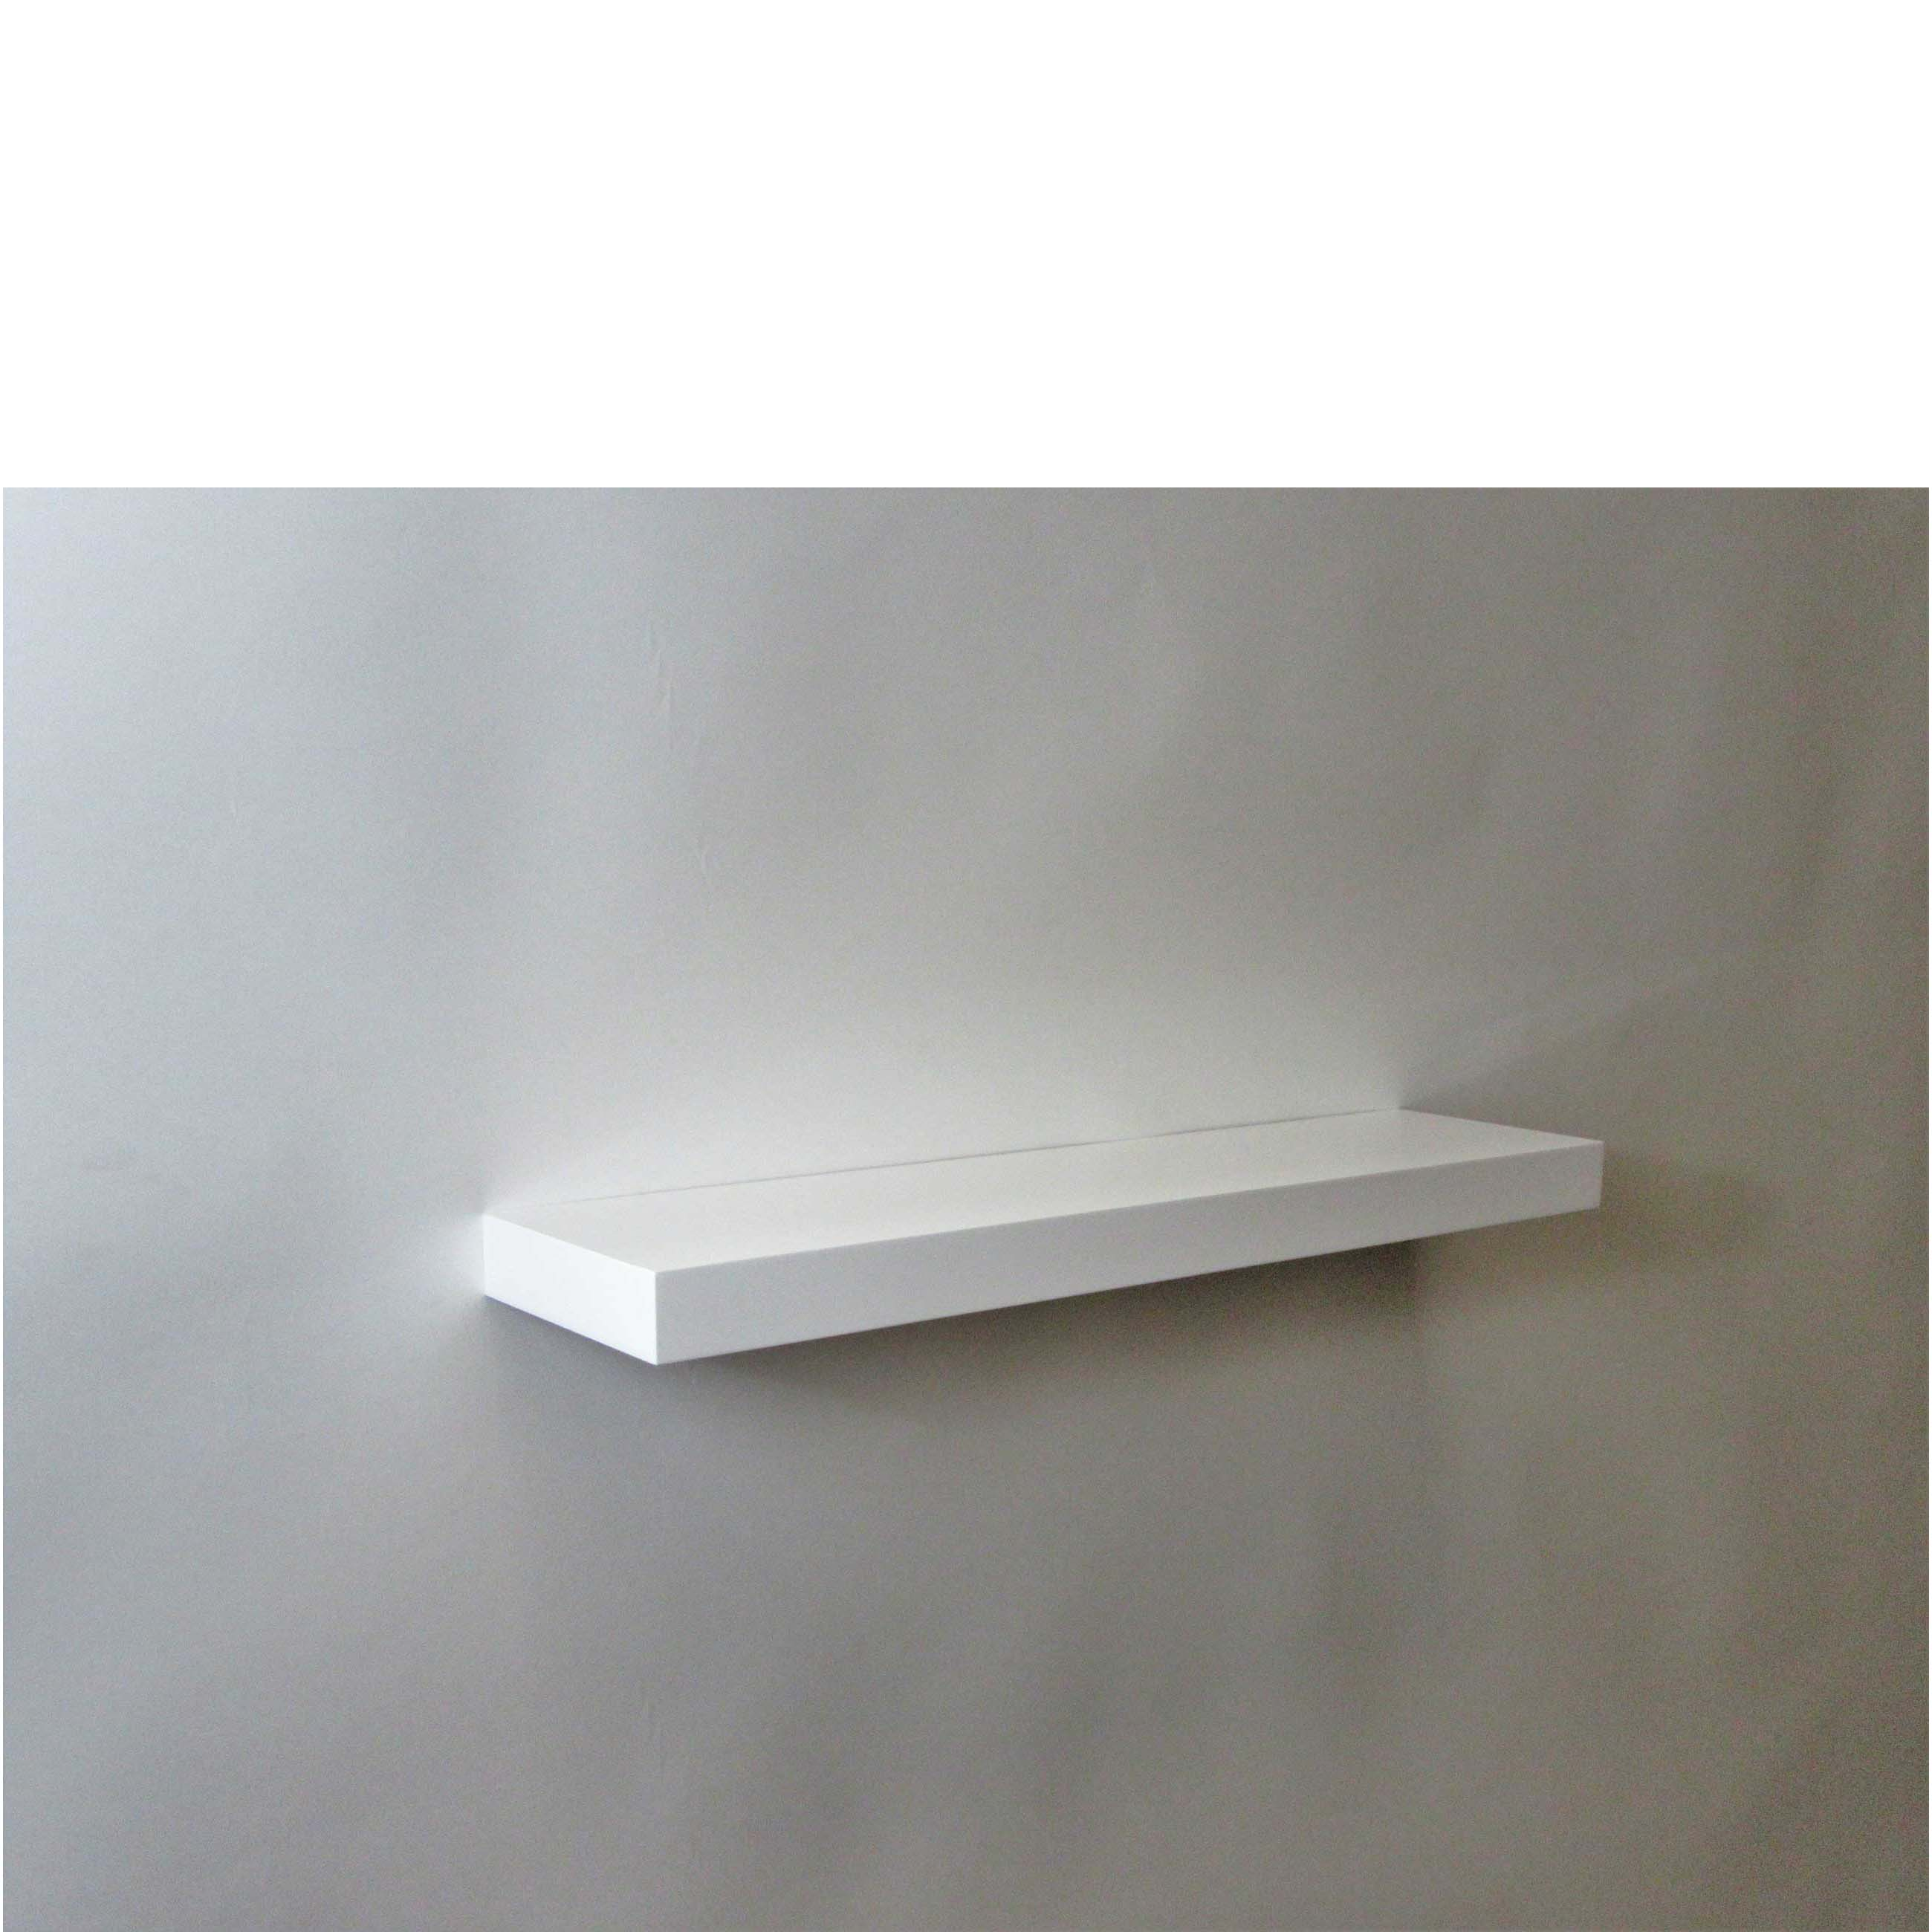 White Floating Shelves Gloss White Floating Shelf 600x150x38mm - Mastershelf